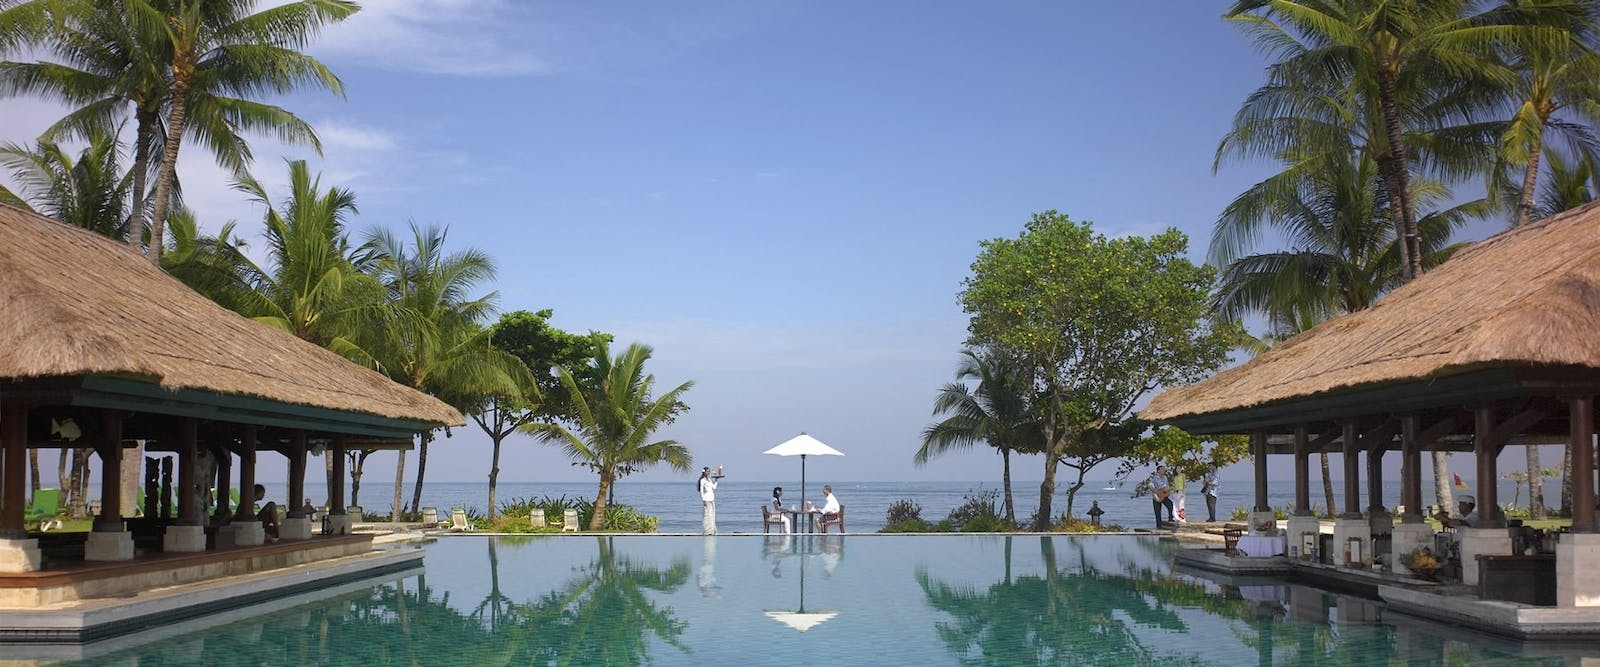 main pool at Intercontinental Bali Resort